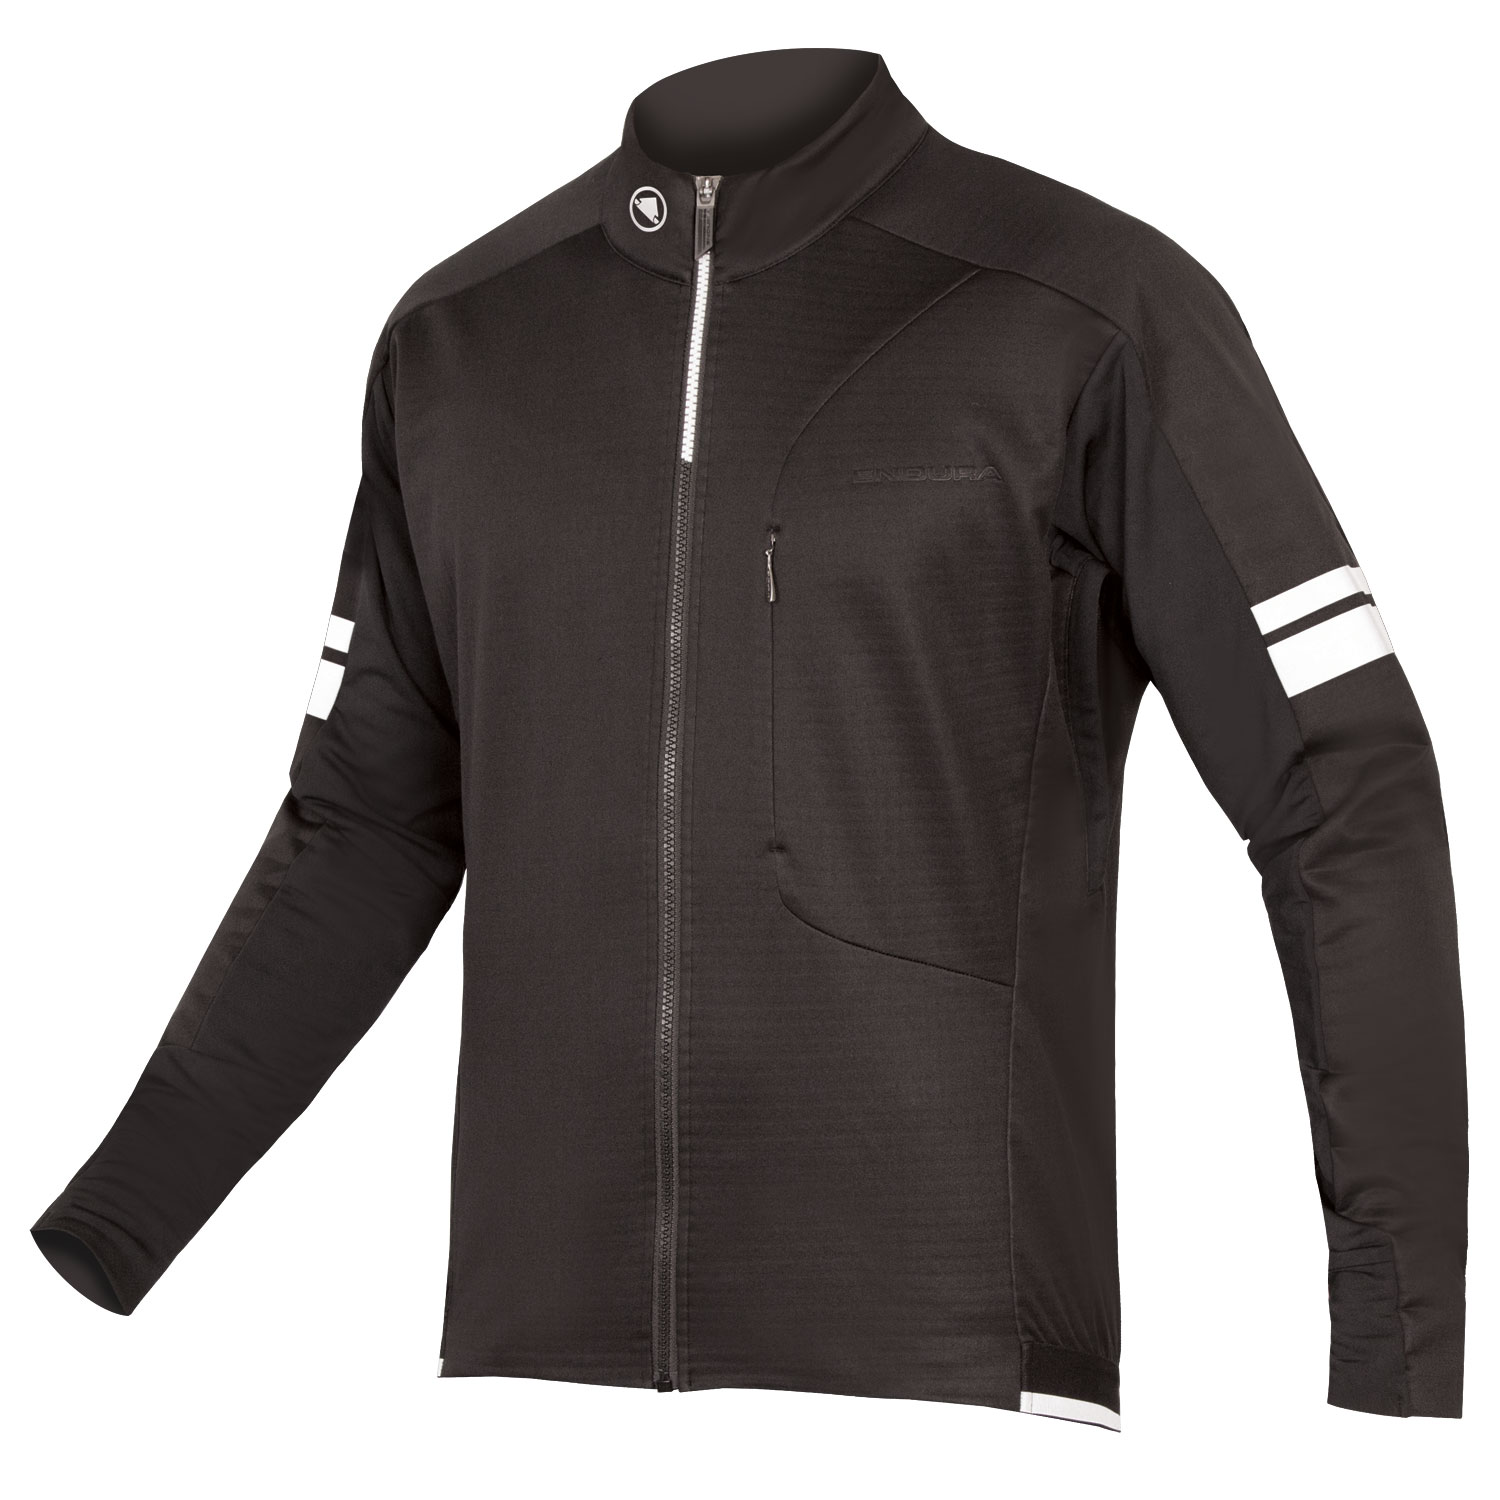 Endura Windchill (Medium) Windproof Winter Jacket